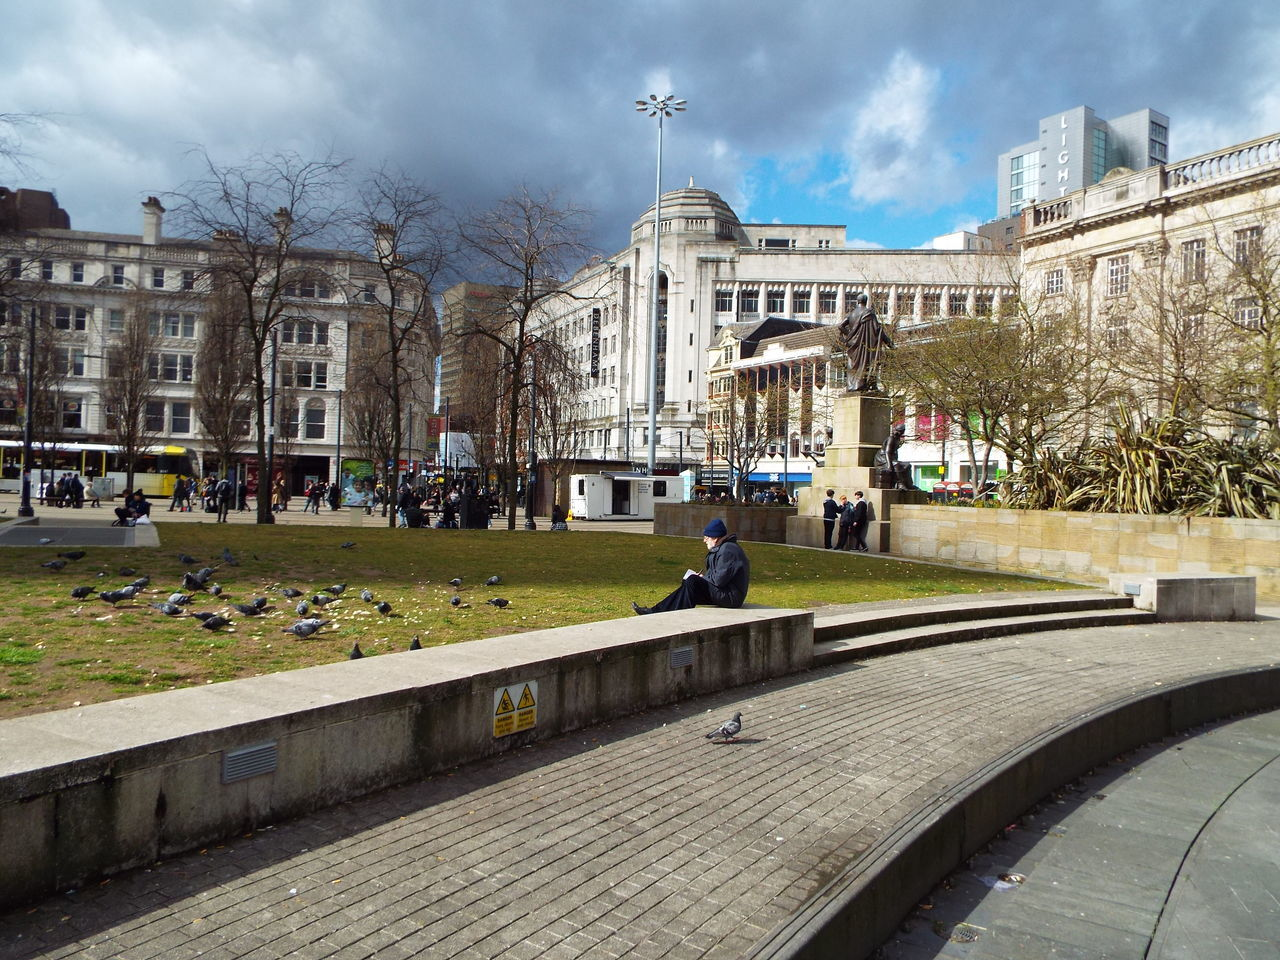 Somebody sat relaxing watching the birds in Manchester Piccadilly Gardens surrounded by the busy city life outside the gardens with people shopping and working in the city centre Manchester Piccadilly Gardens Manchester City Centre City Centre City Life City View  Busy City Busy Life Busy People Busy Busy Busy Relaxing Sat Watching The Birds Birds In The City Birds Pigeons The Street Photographer - 2016 EyeEm Awards